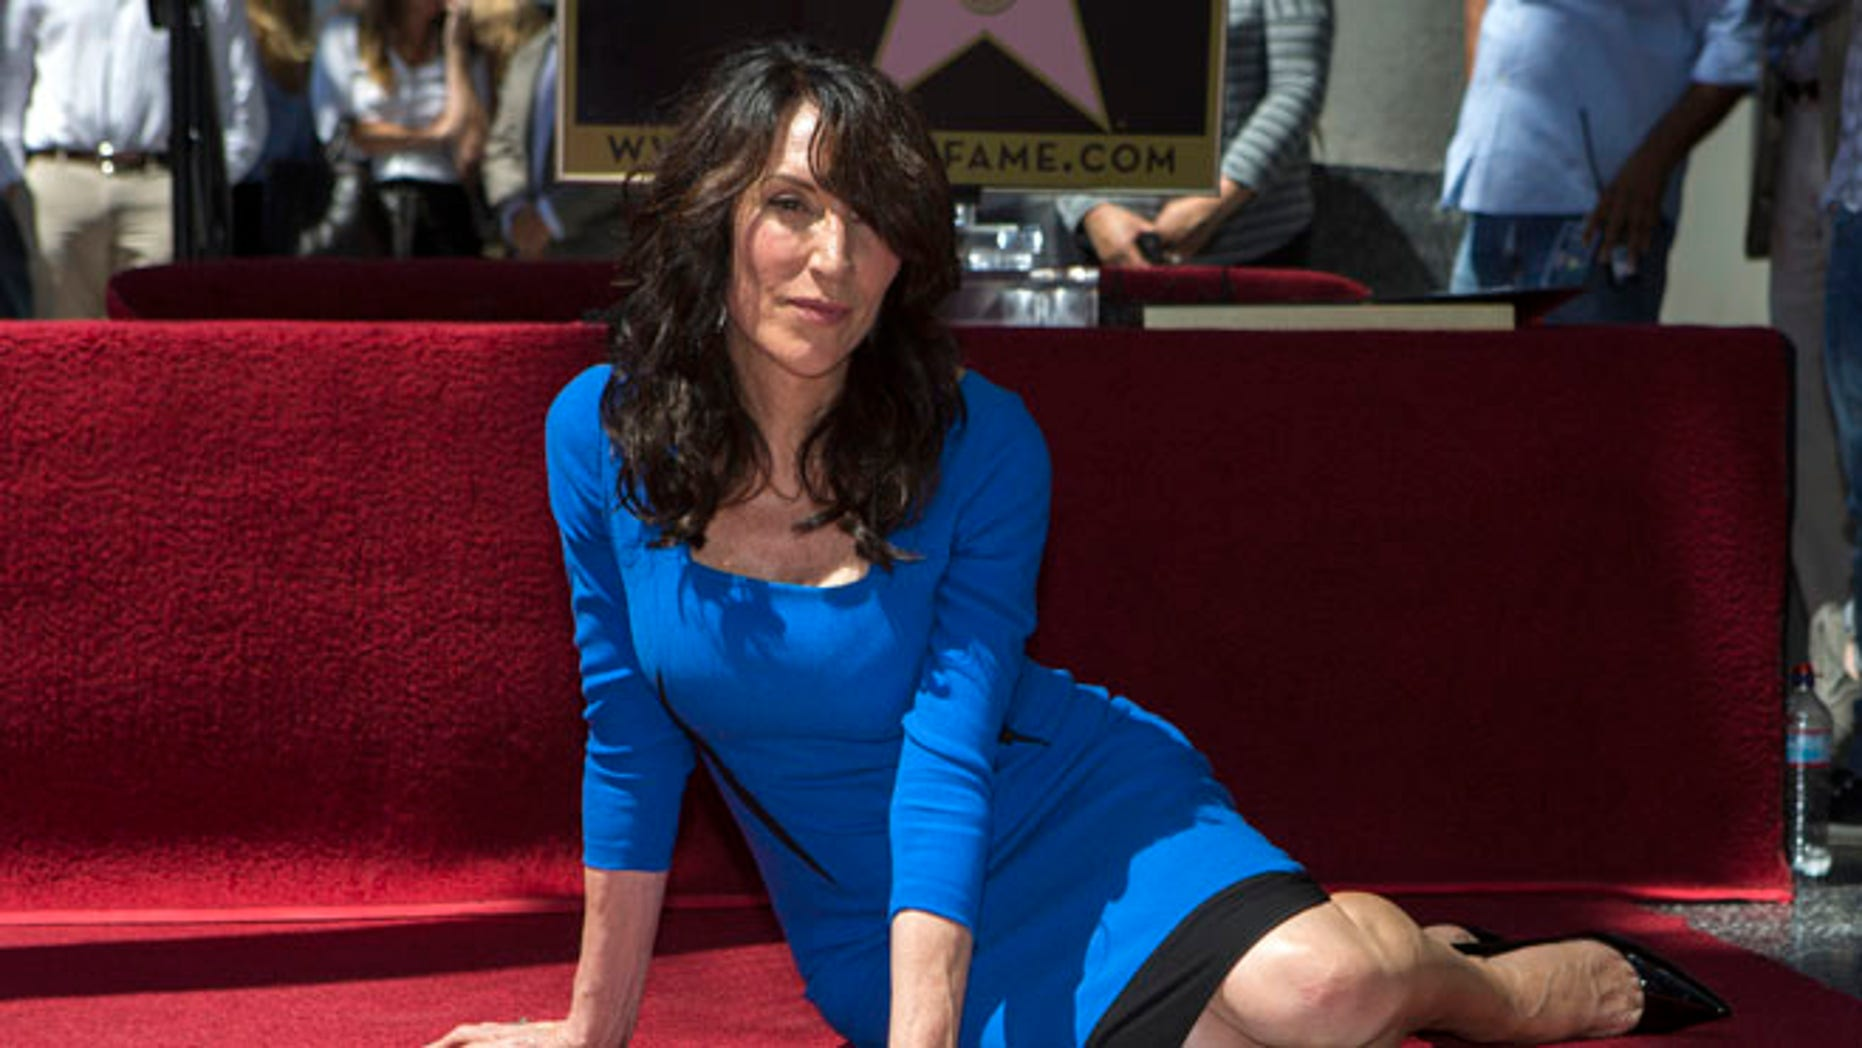 September 9, 2014. Actress Katey Sagal poses on her star after it was unveiled on the Walk of Fame in Hollywood, California.